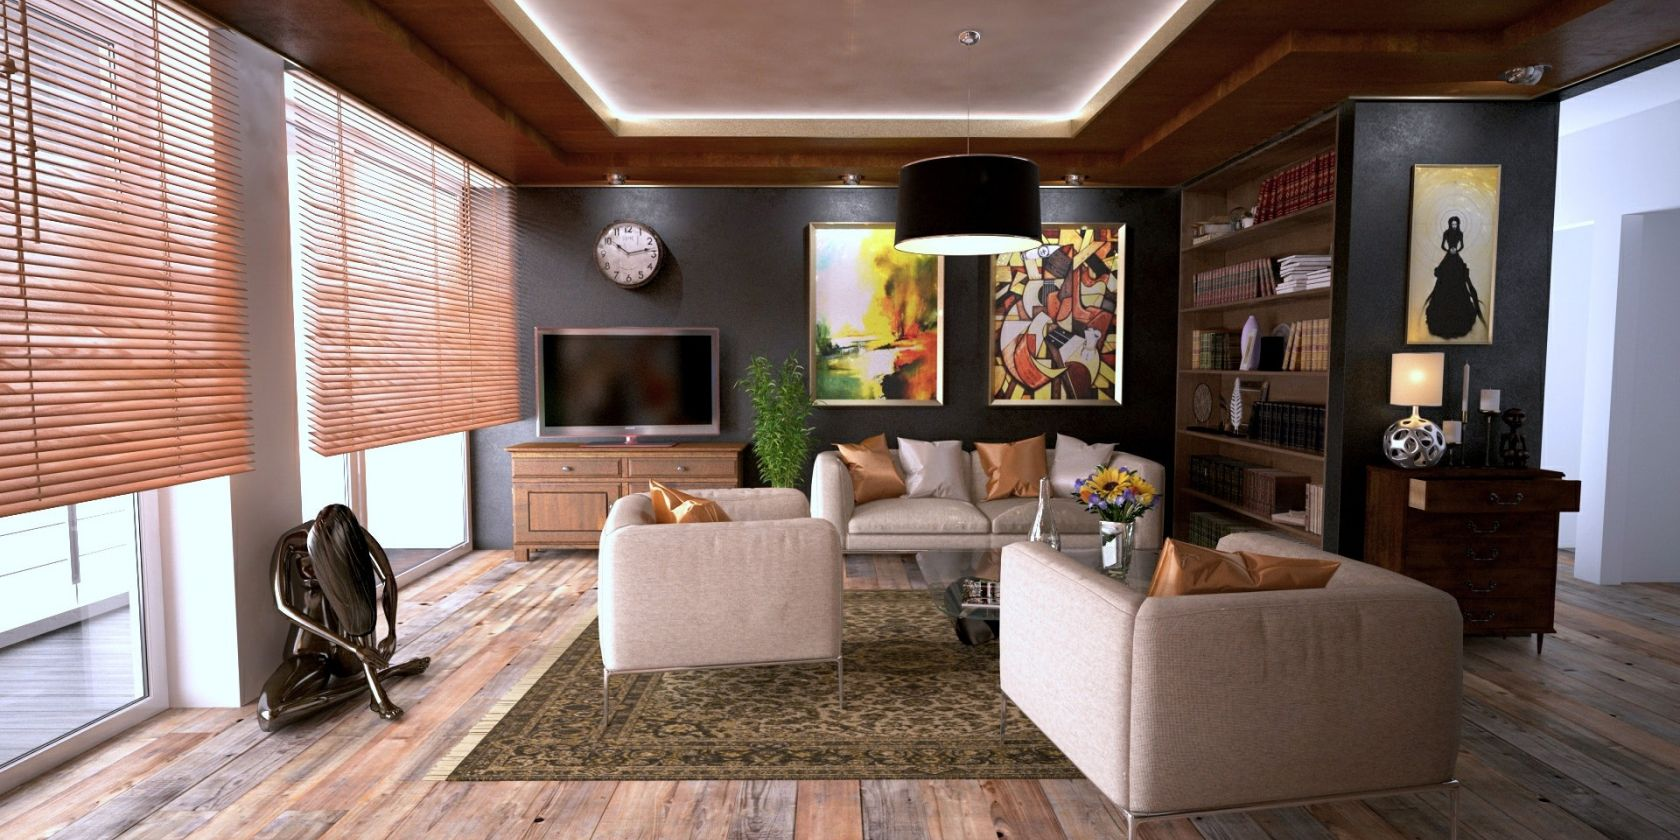 A Smart Home, Room by Room